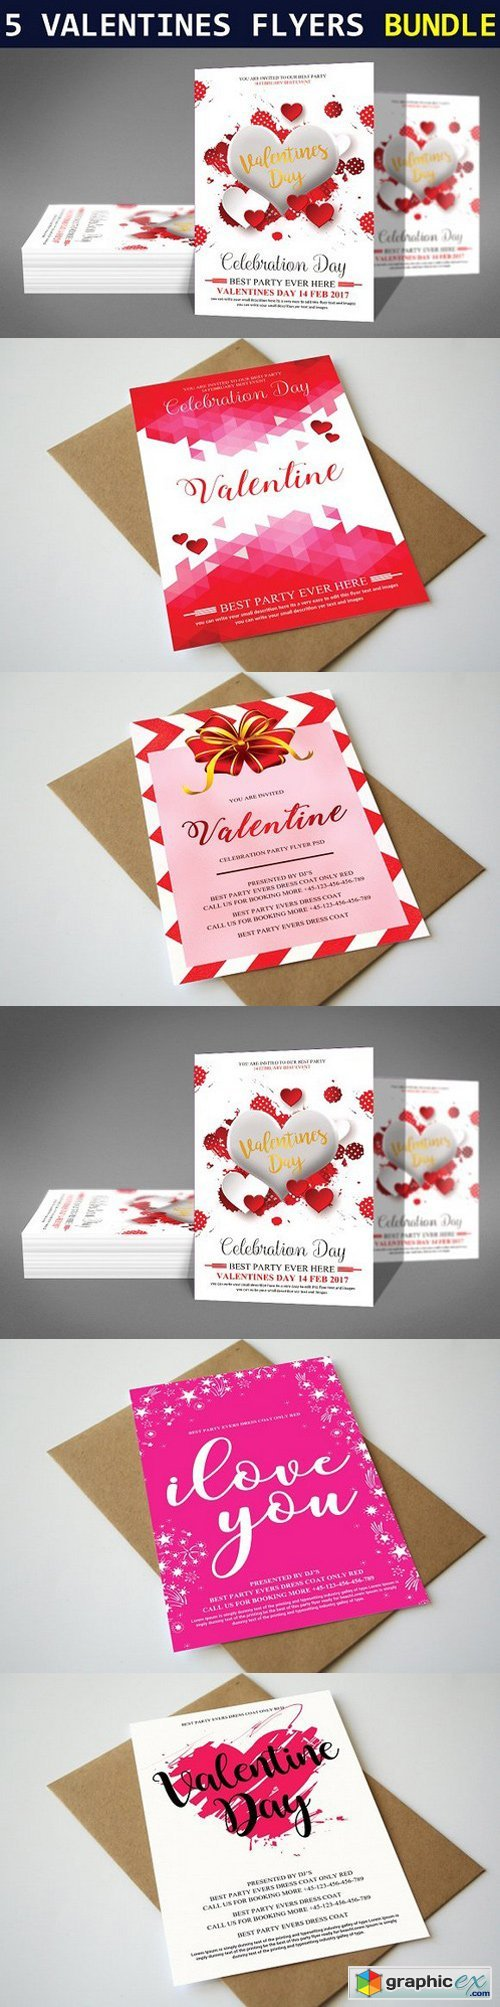 5 Valentines Day Flyers Bundle